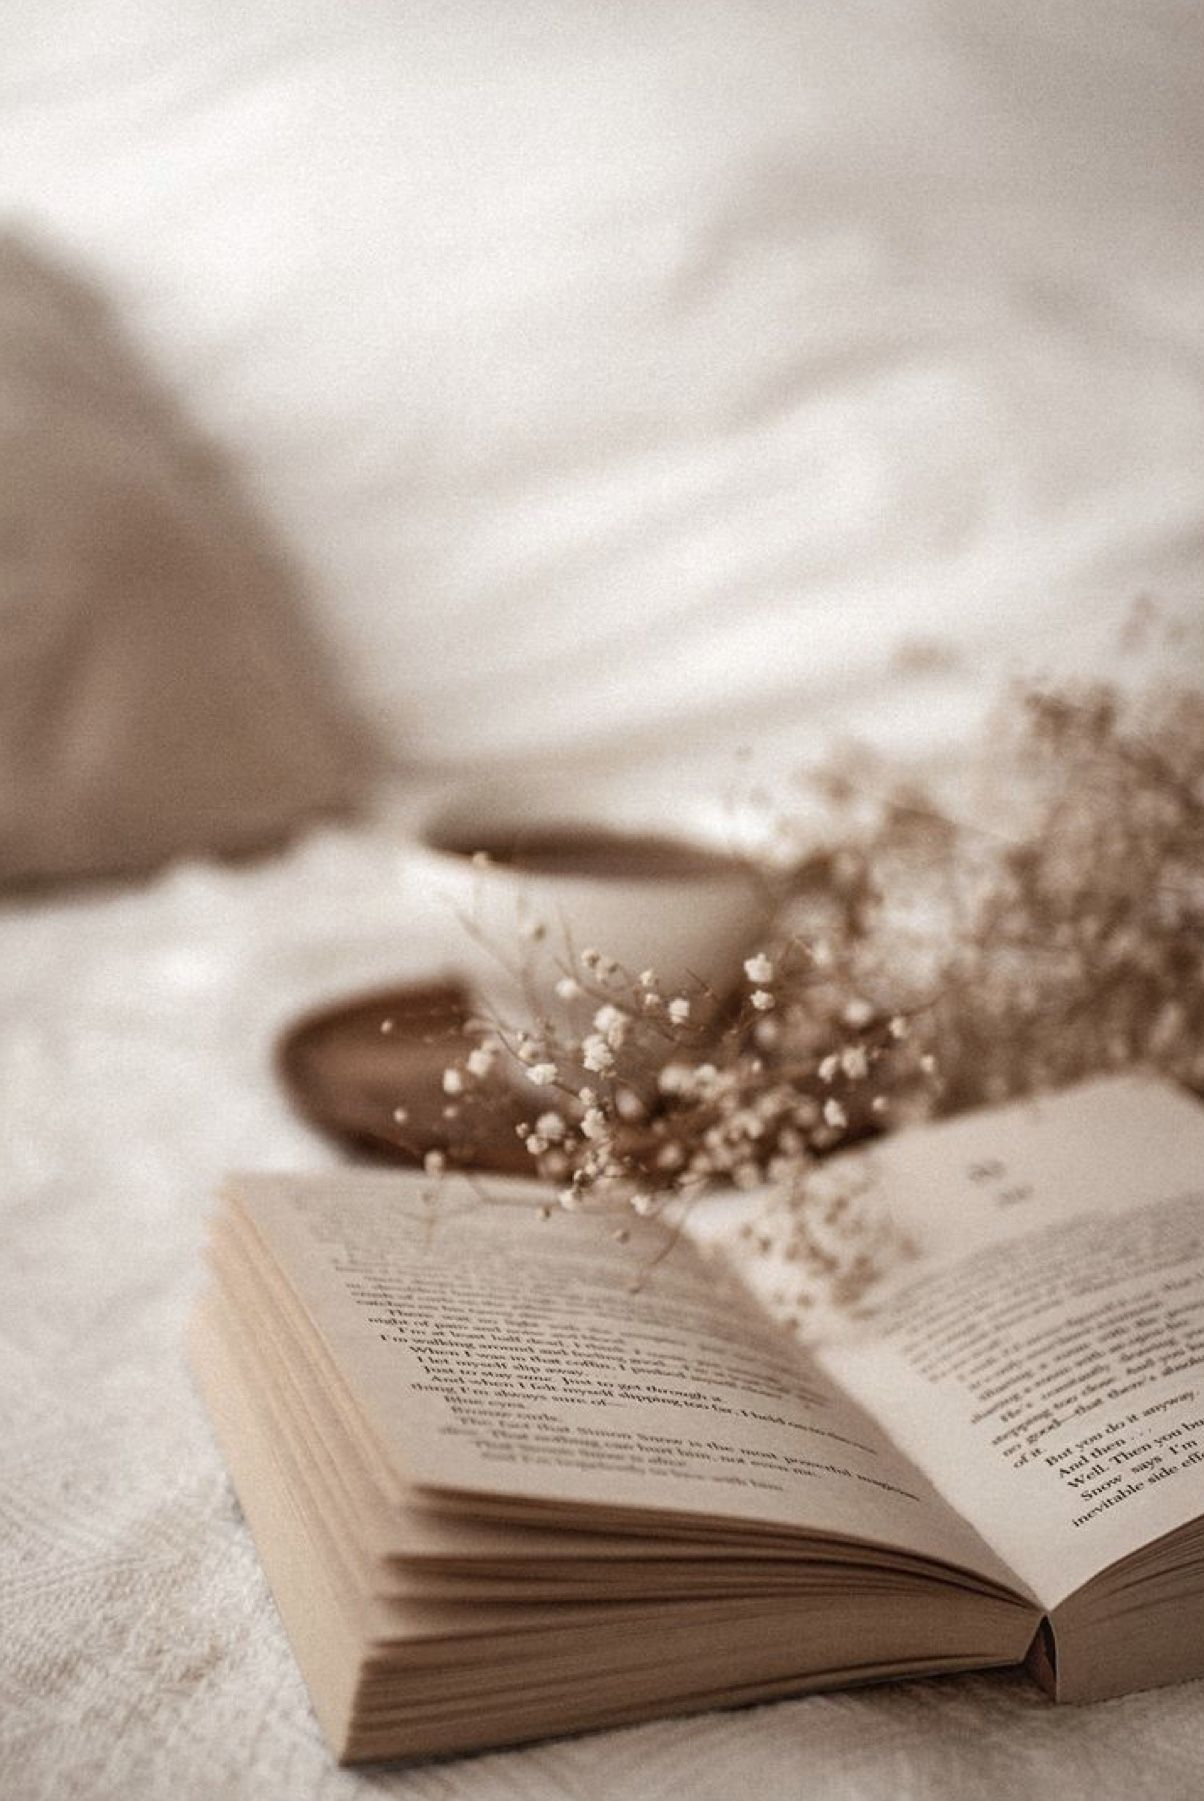 Books And Coffee Wallpaper Iphone Books And Coffee Brown Aesthetic Aesthetic Iphone Wallpaper Beige Aesthetic